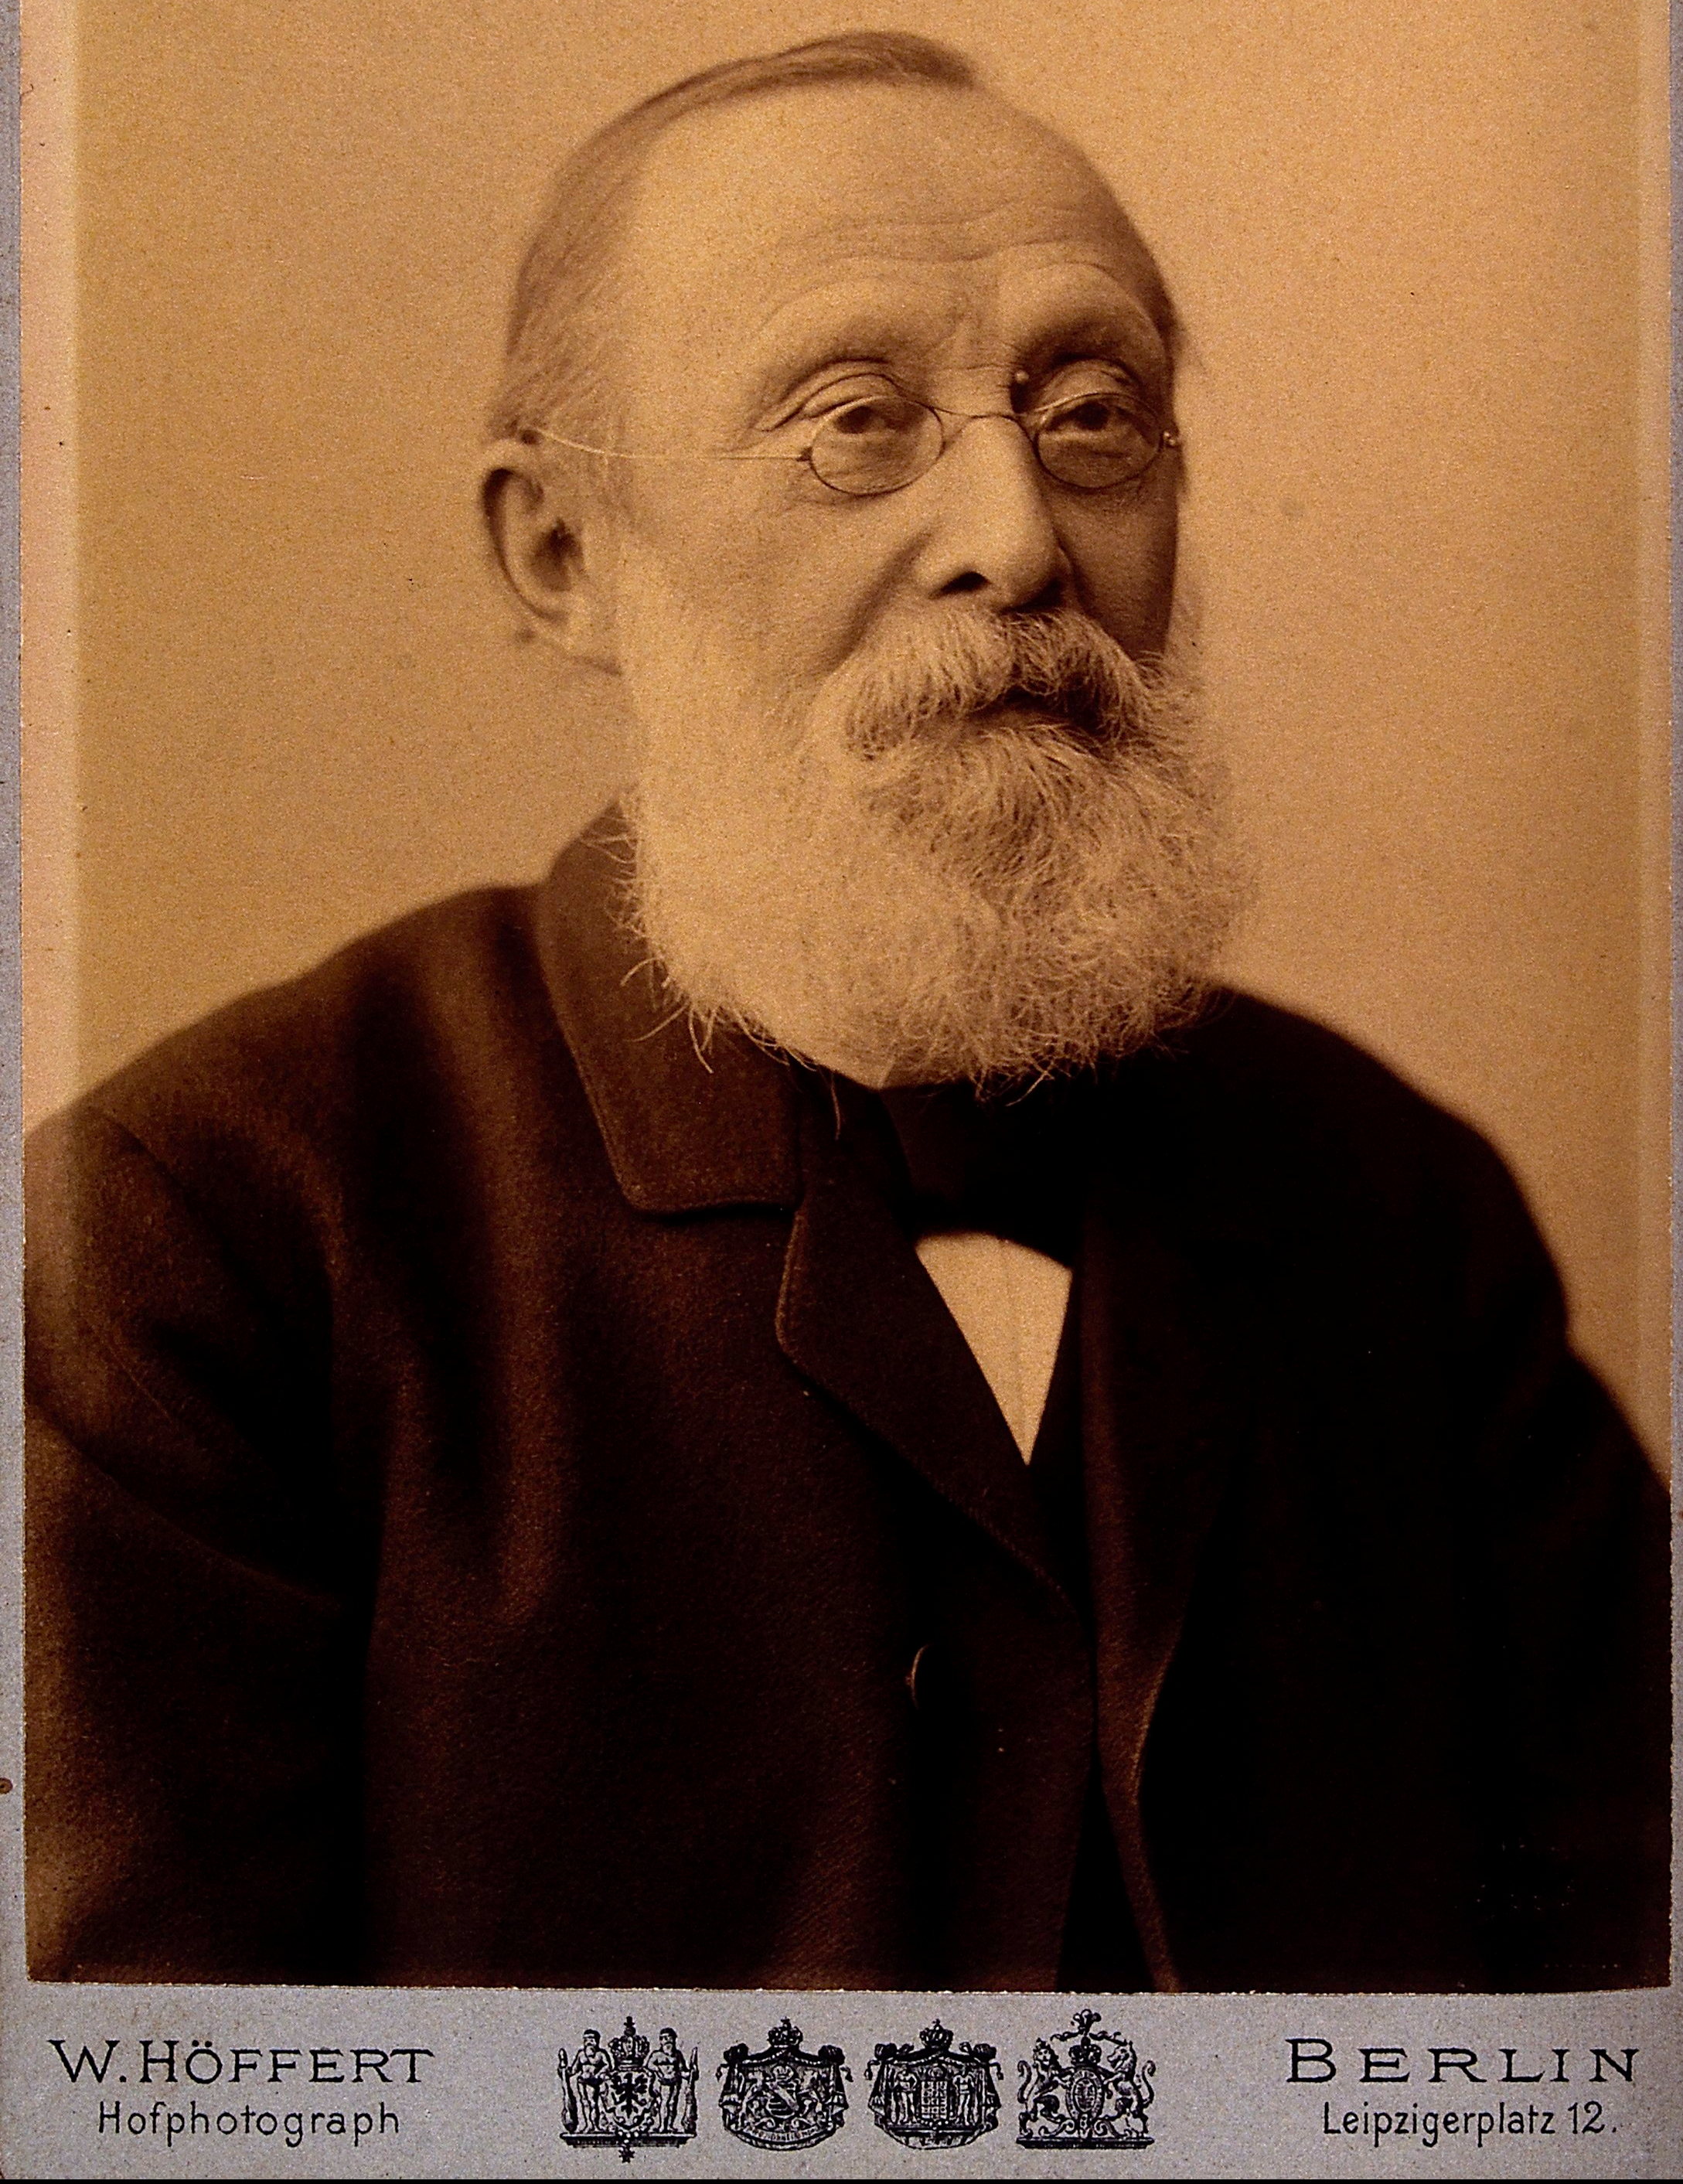 Rudolph Virchow M.D., father of modern pathology and founder of social medicine